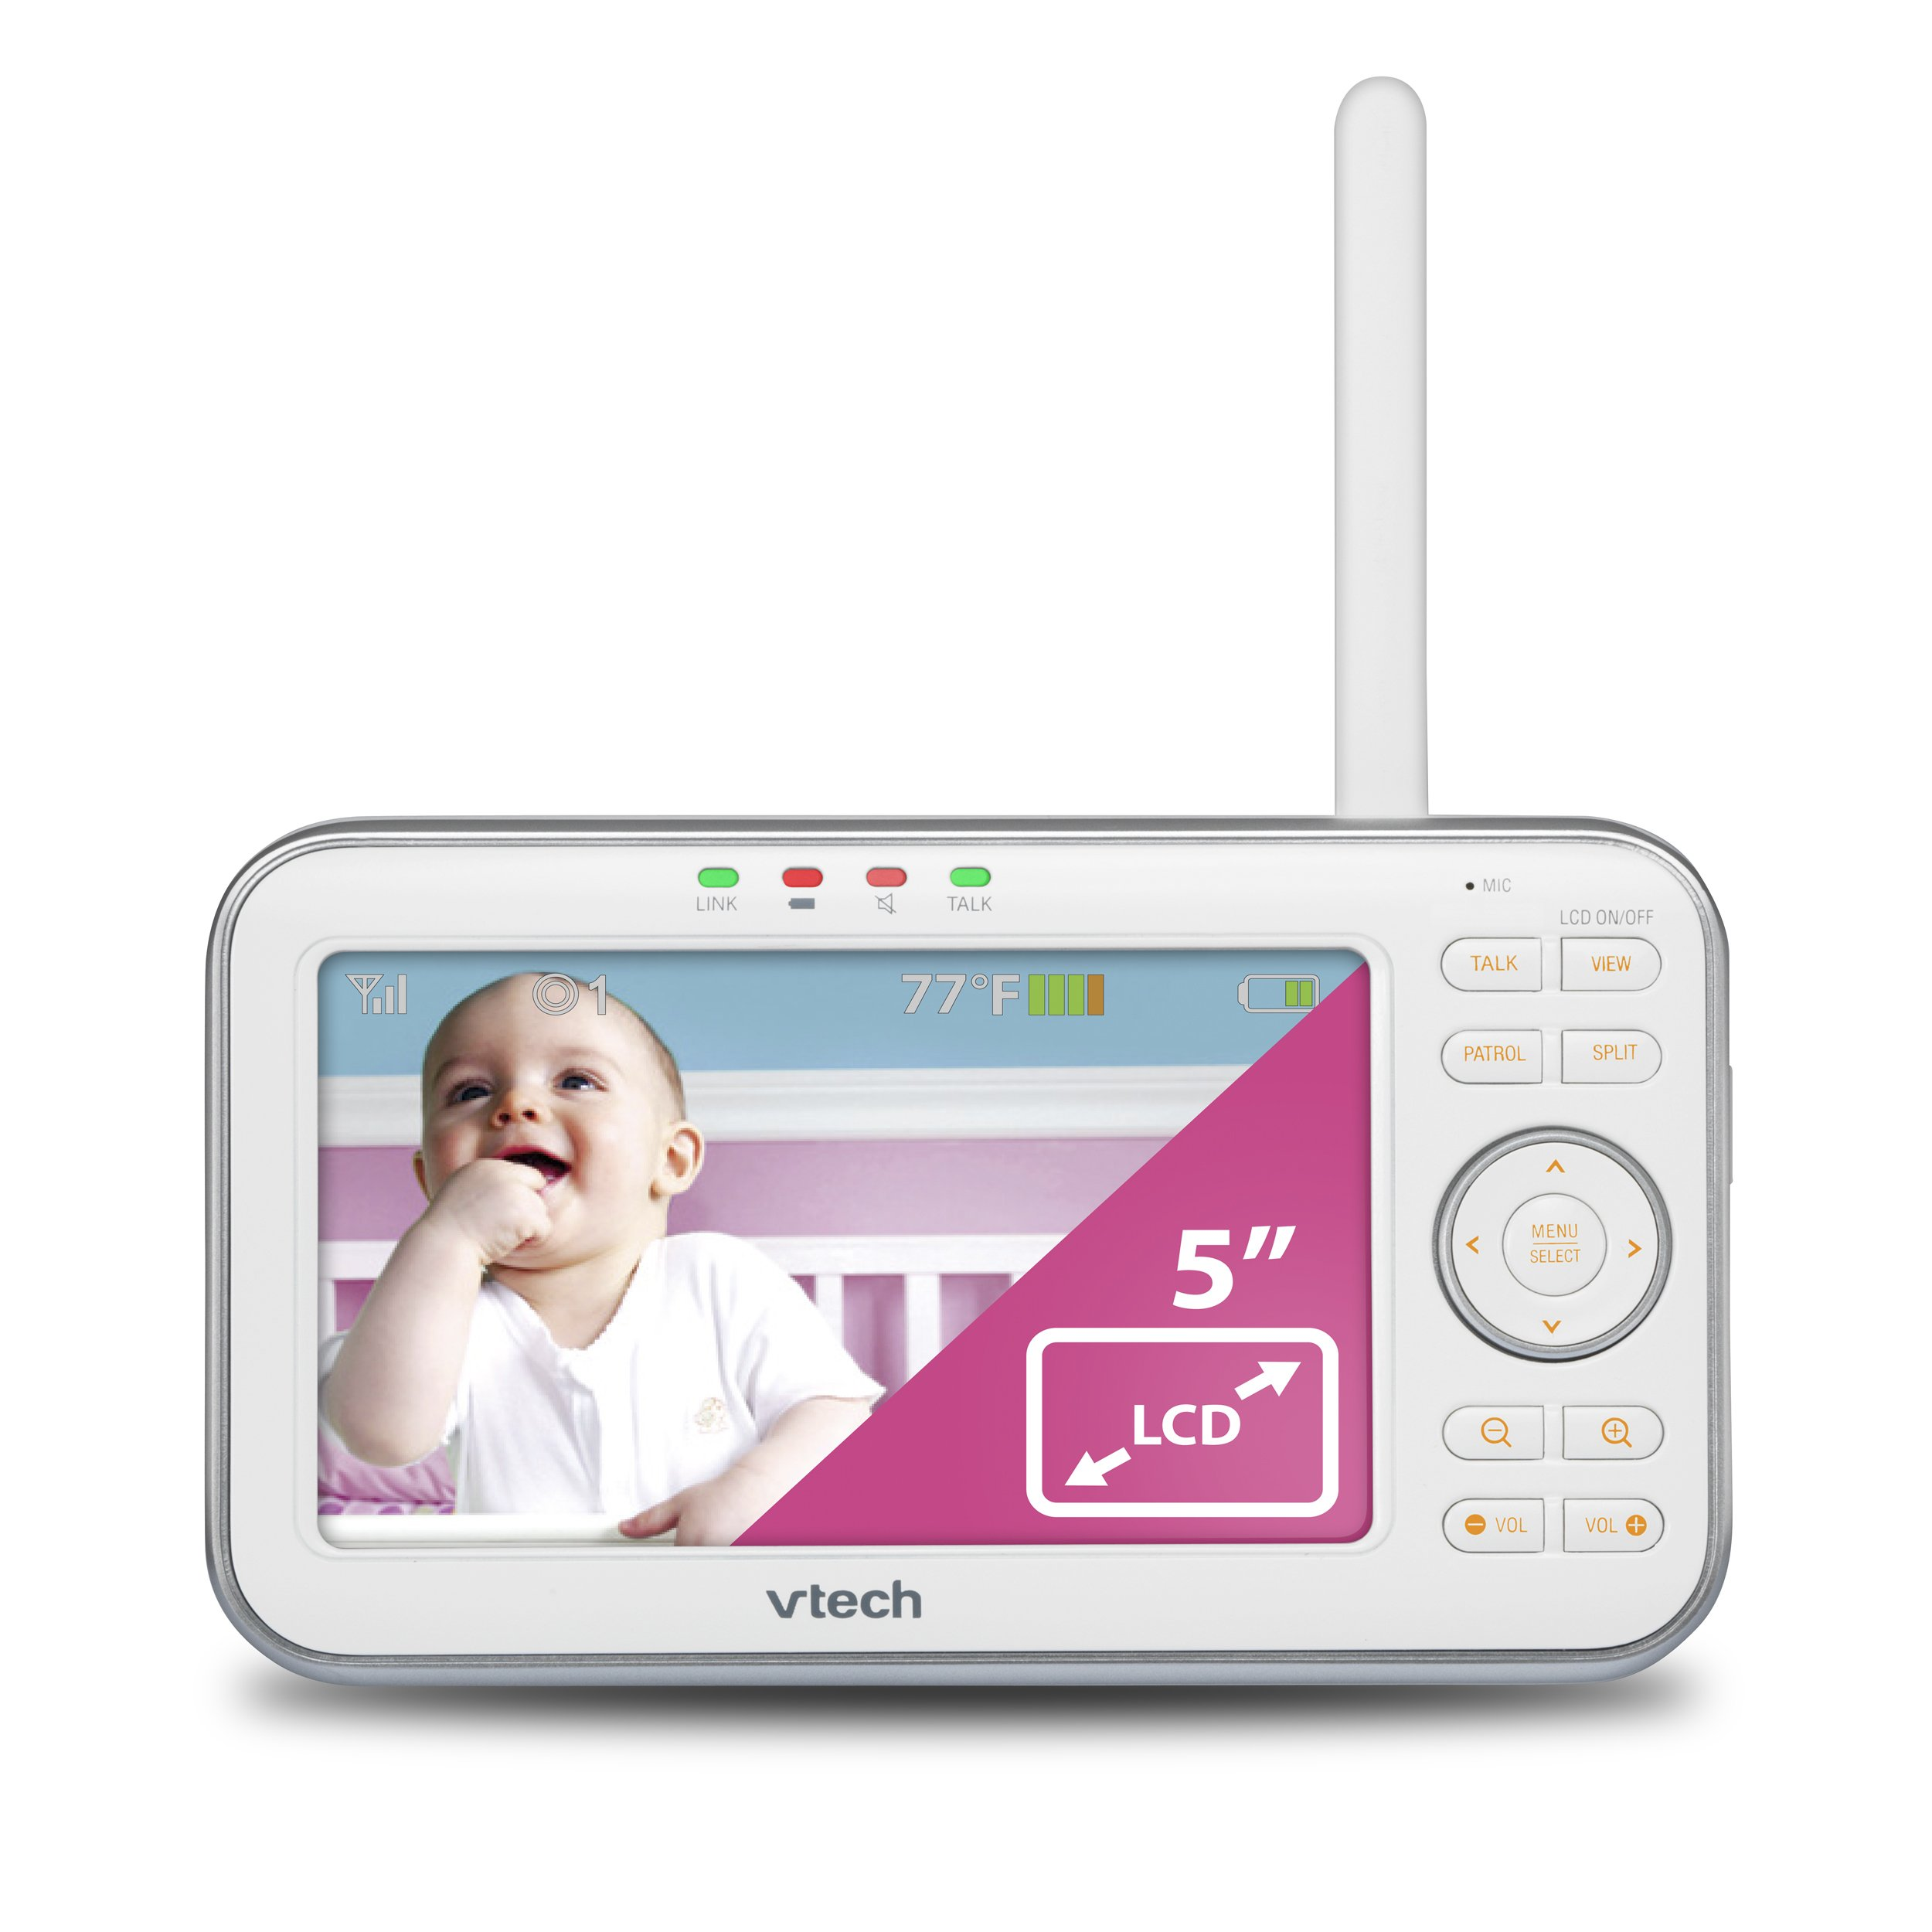 VTech VM5271-2 Video Baby Monitor with 5-inch Screen, Motorized Lens with 6x Optical Zoom, Soothing Sounds & Lullabies, Temperature Sensor & 1,000 feet of Range with 2 Cameras by VTech (Image #12)